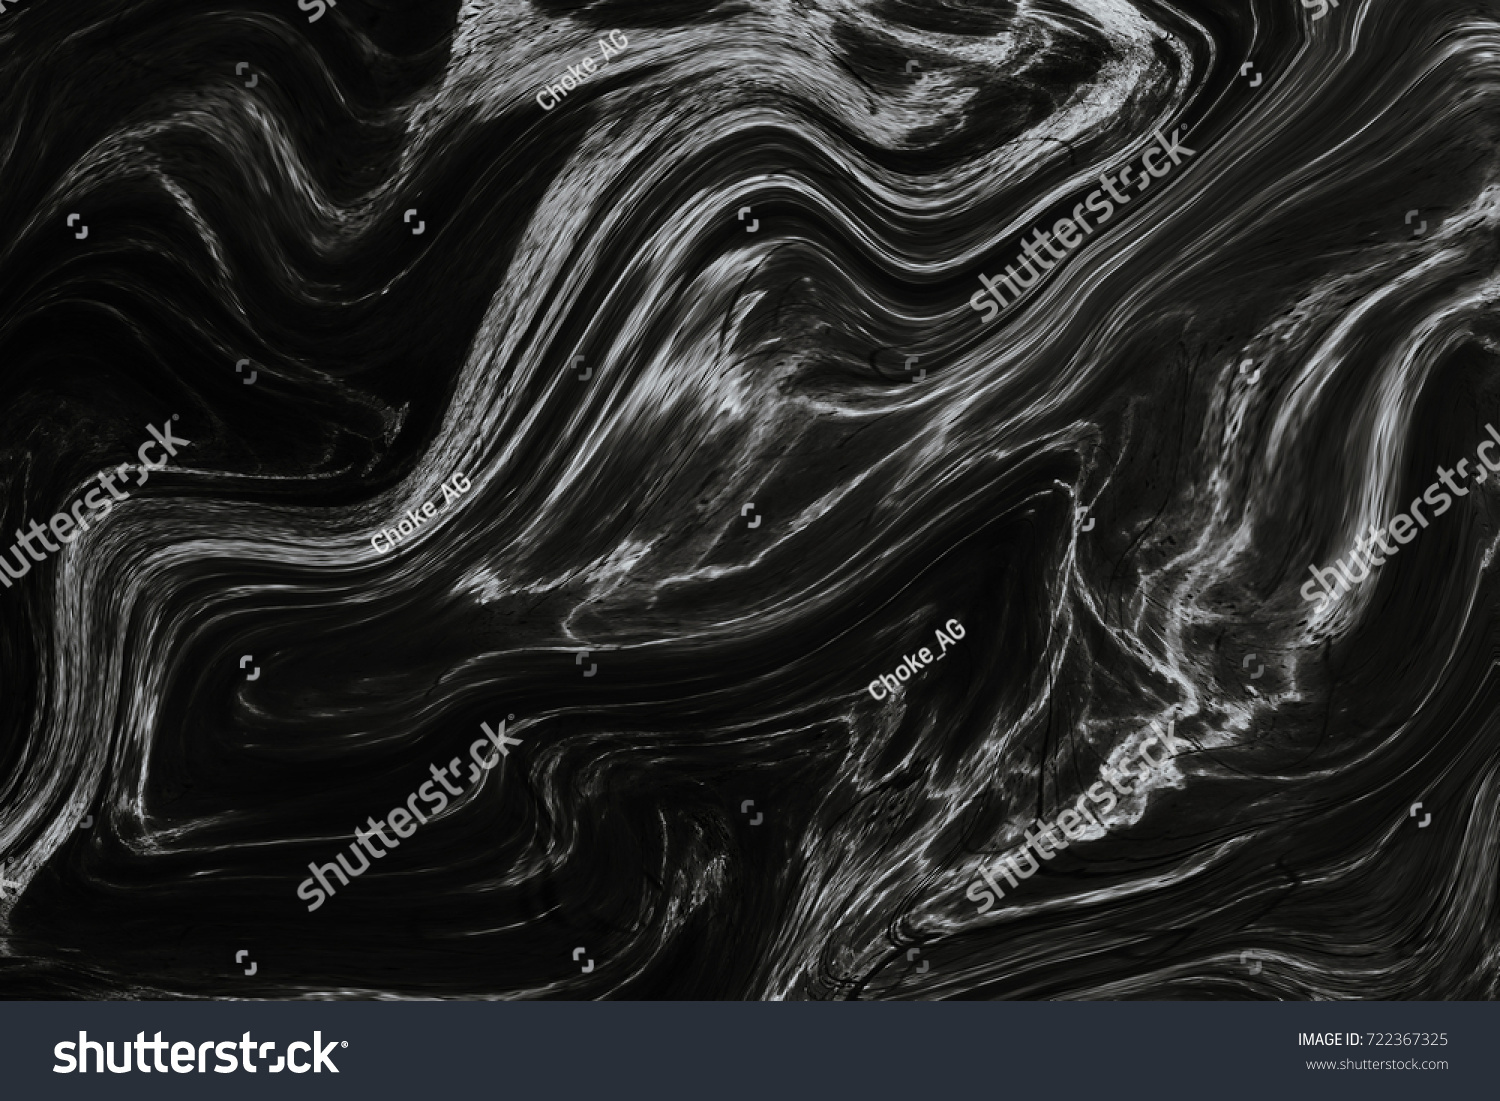 Great Wallpaper Marble Mobile - stock-photo-marble-ink-painted-waves-texture-background-pattern-can-used-for-wallpaper-cover-case-mobile-phone-722367325  Image_467382.jpg